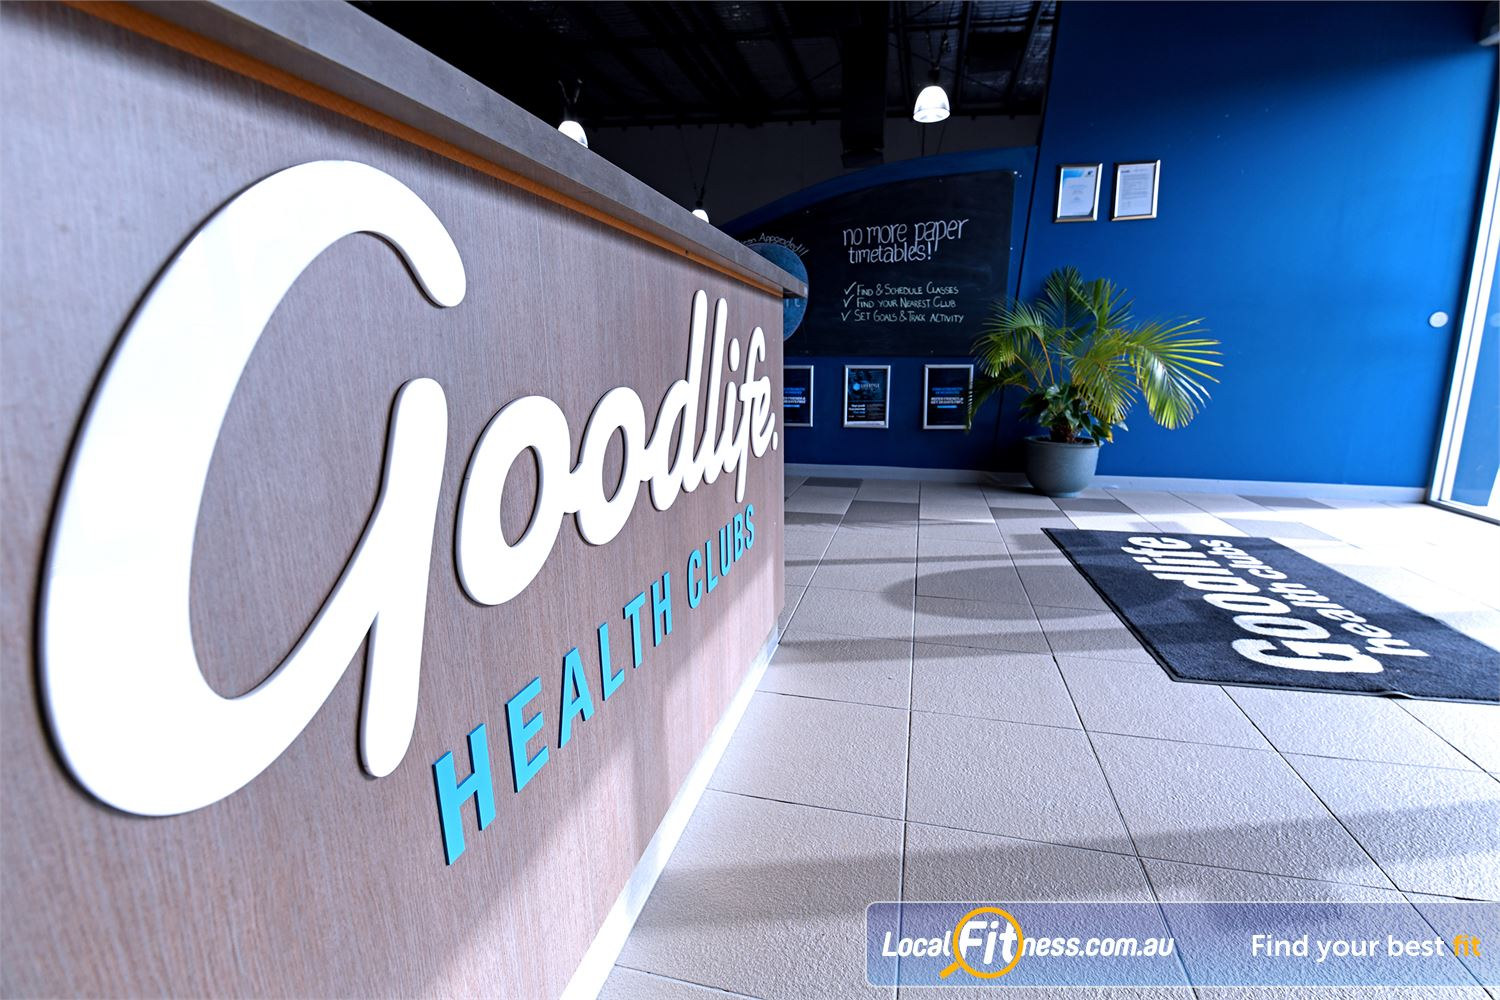 Goodlife Health Clubs Near Moolap Our Goodlife Club provides 24 hour Geelong gym access.